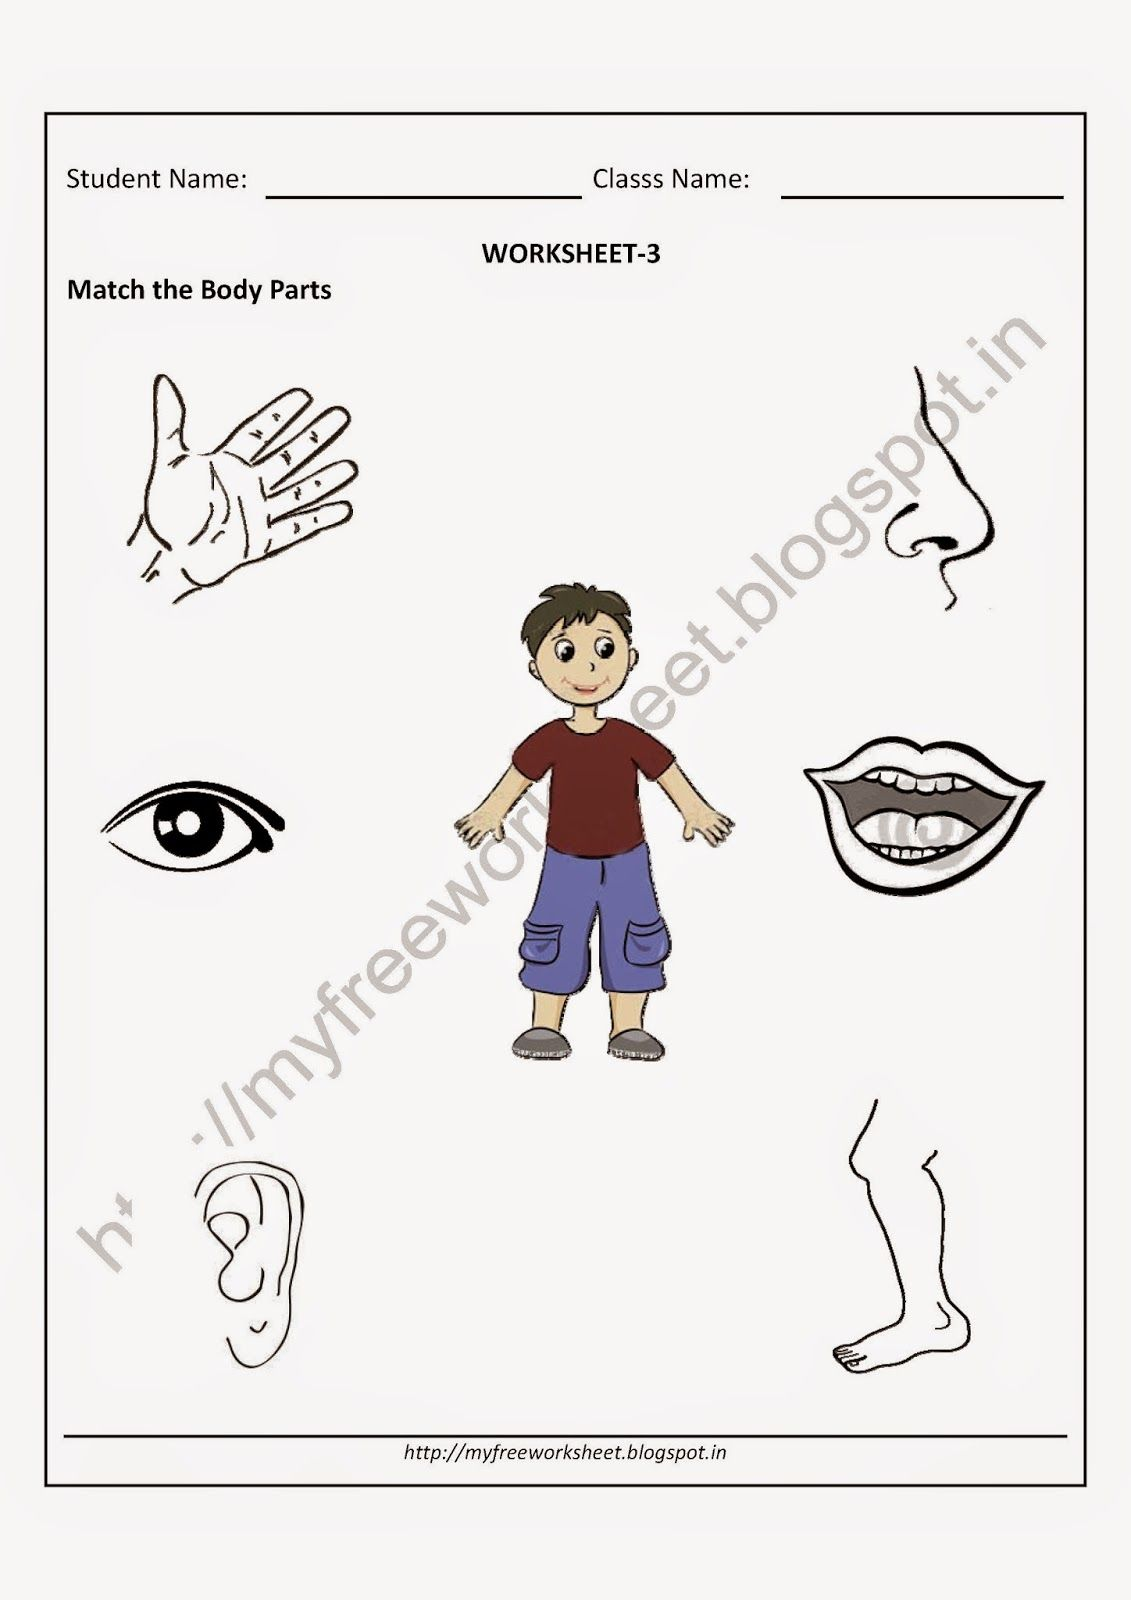 Worksheet for kindergarten evs best images of esl worksheets insect body parts nursery matchthebodypa criabooks also rh pinterest